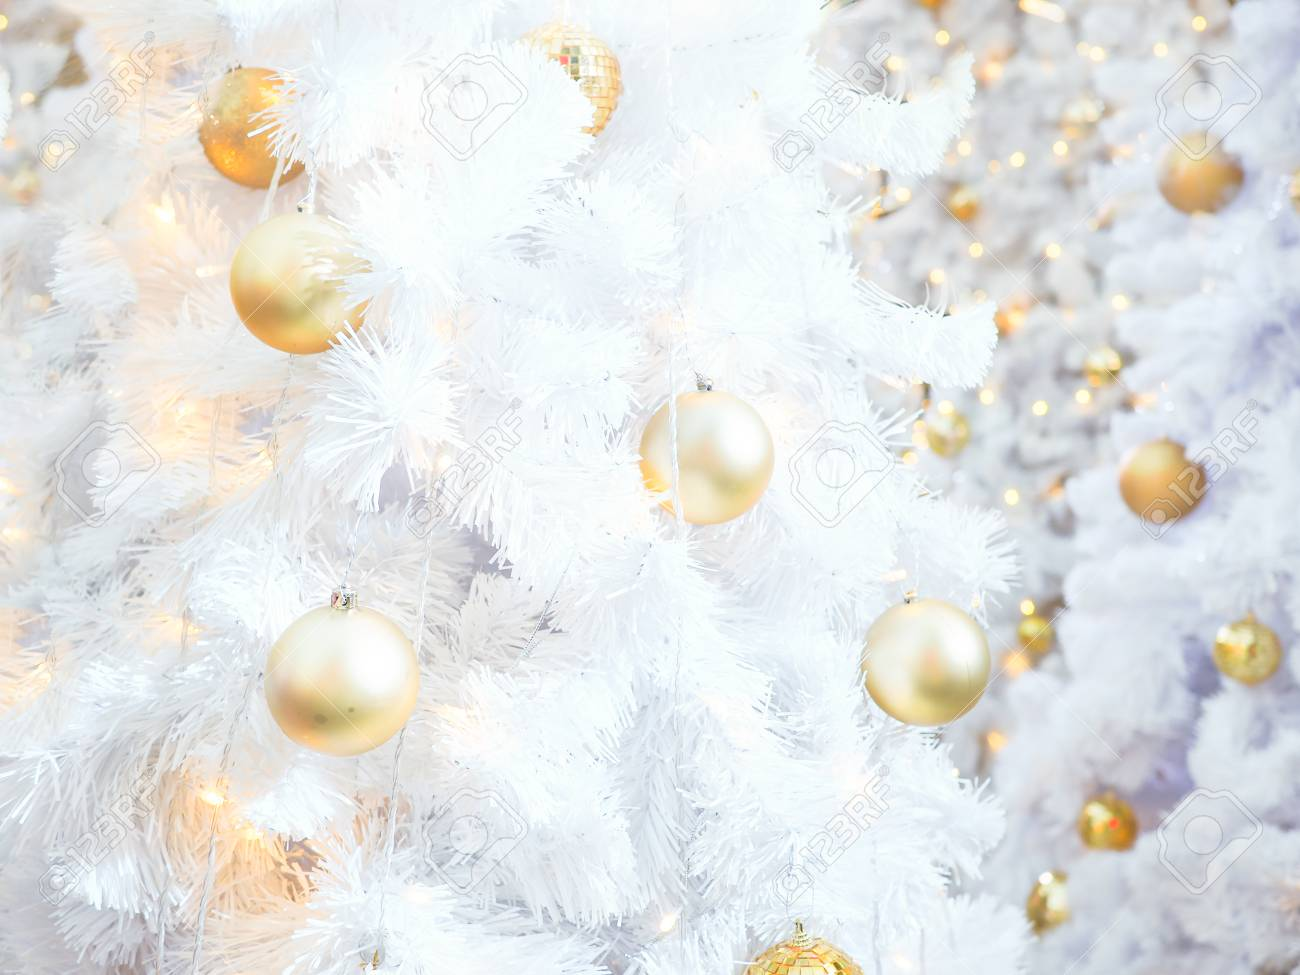 Golden Ball On White Christmas Tree Background For Xmas Wallpaper